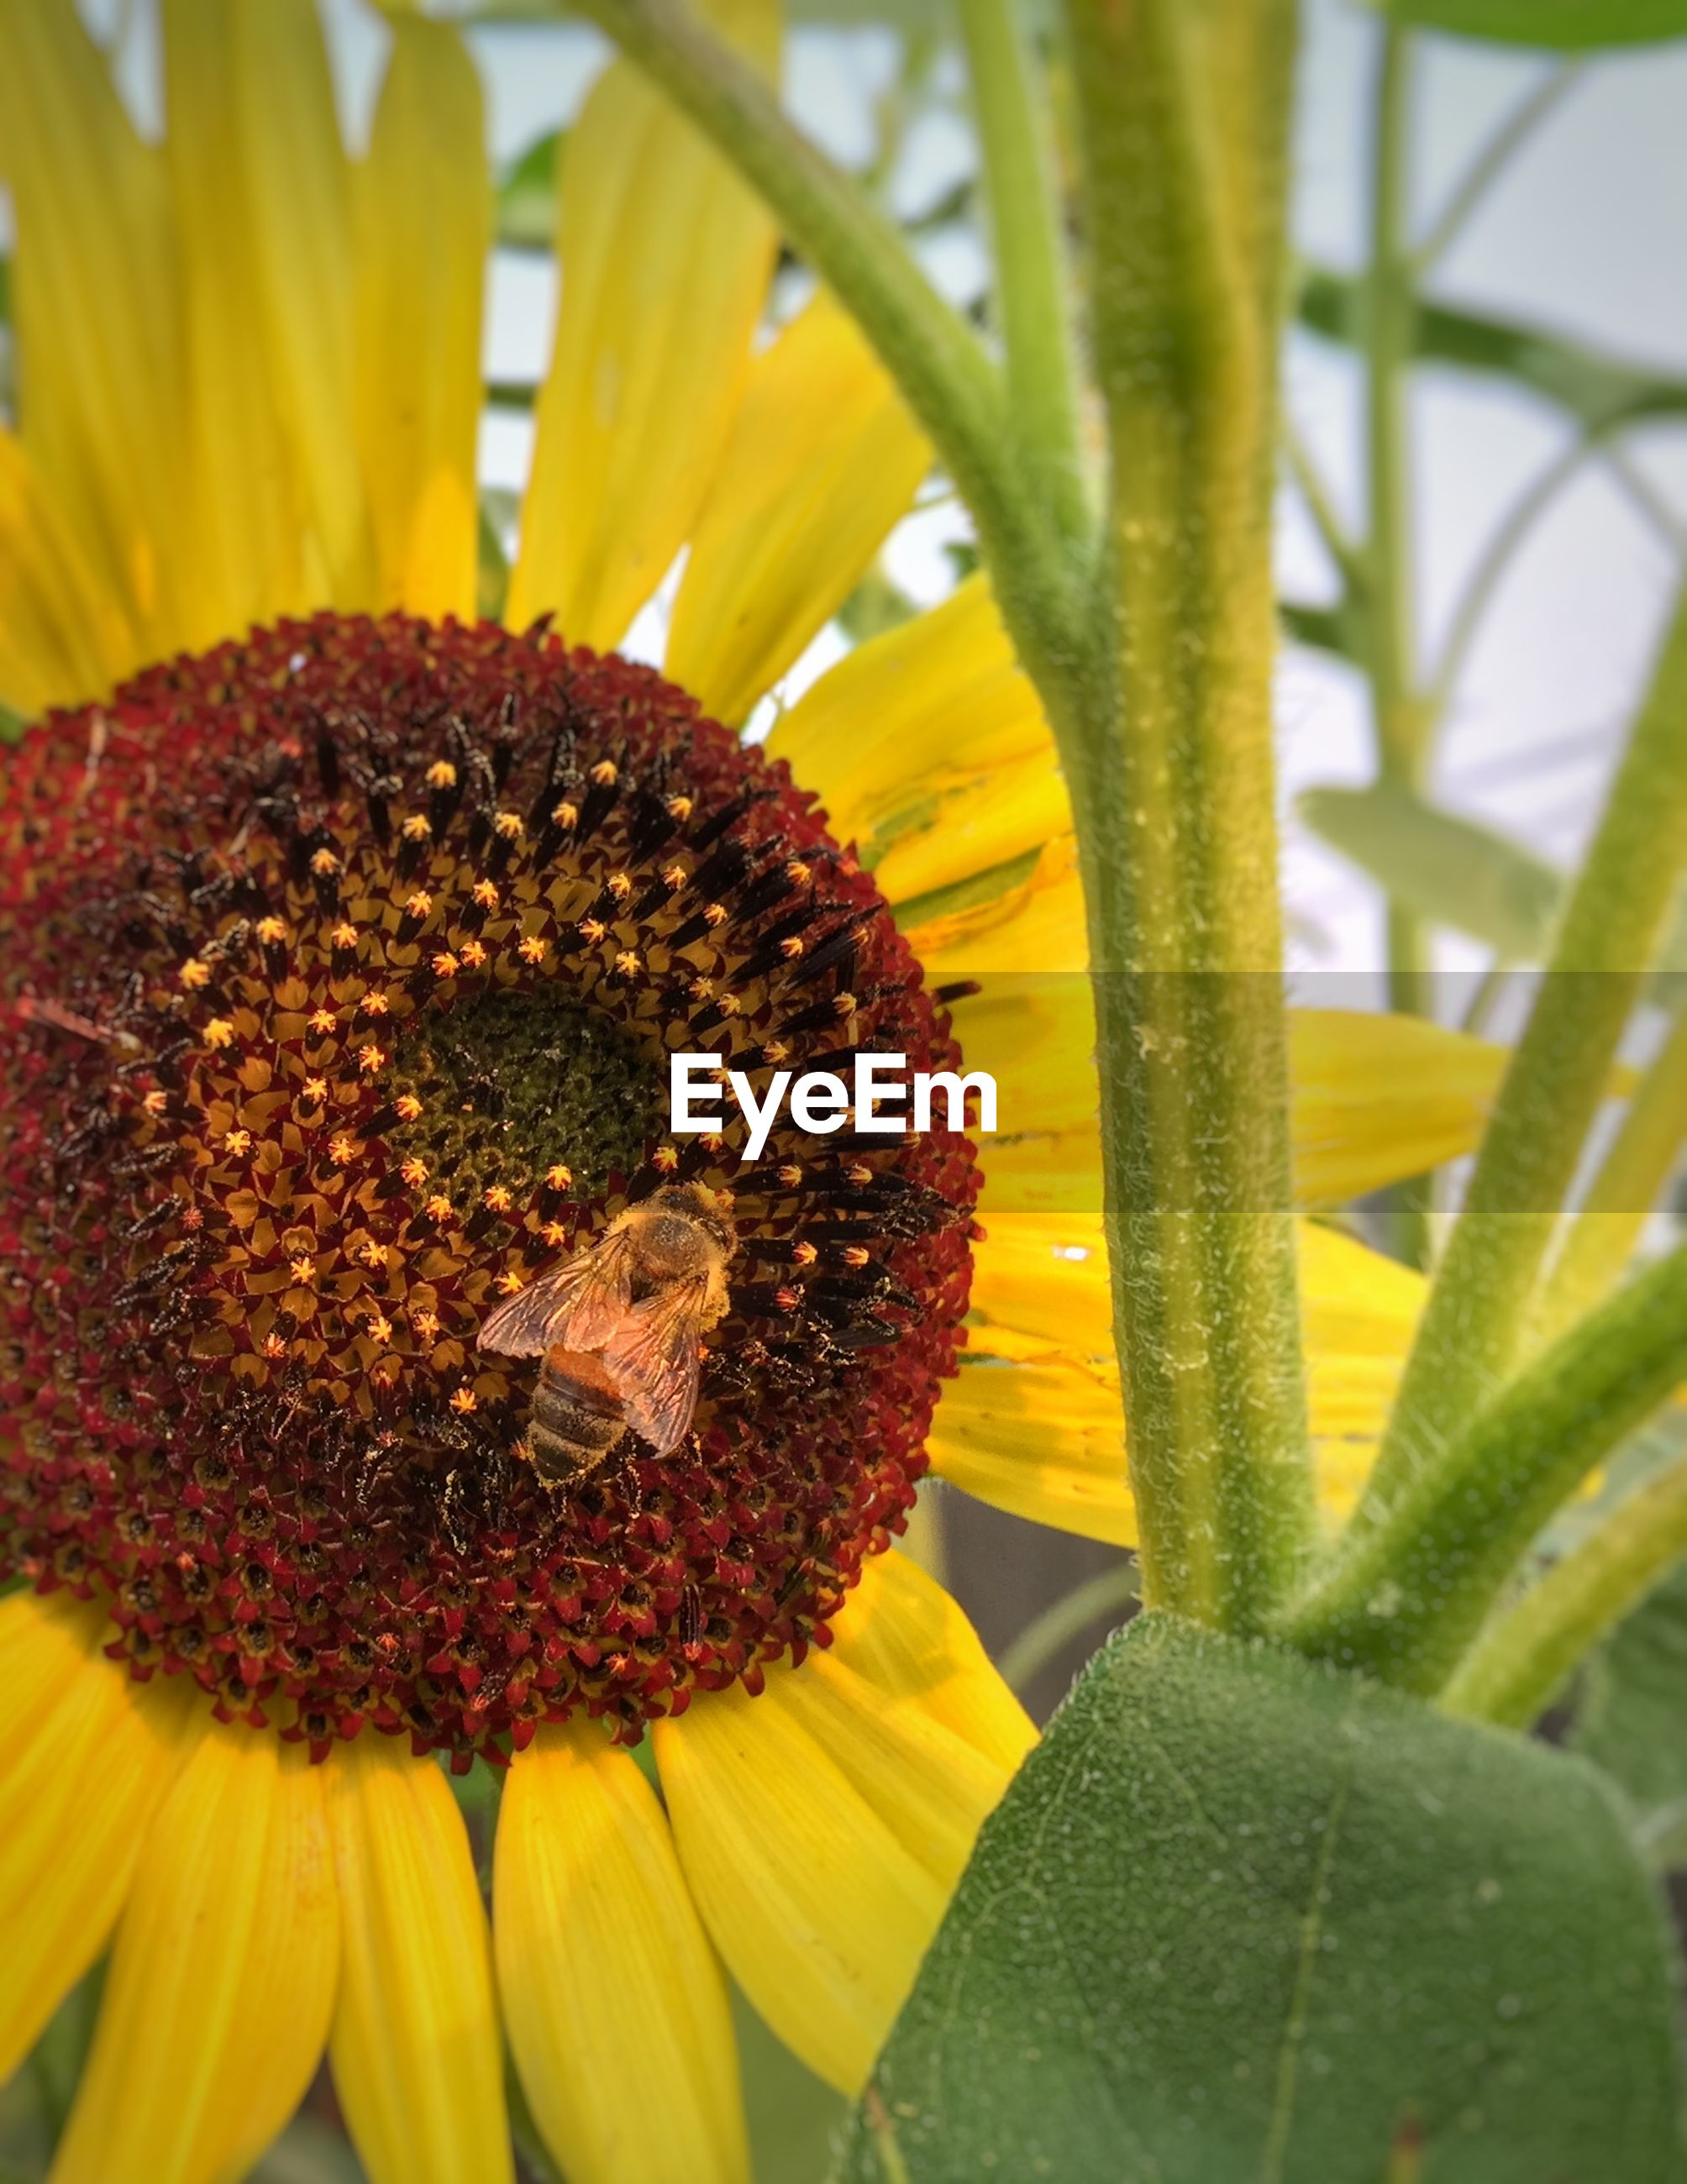 Close-up of insect on sunflower blooming outdoors